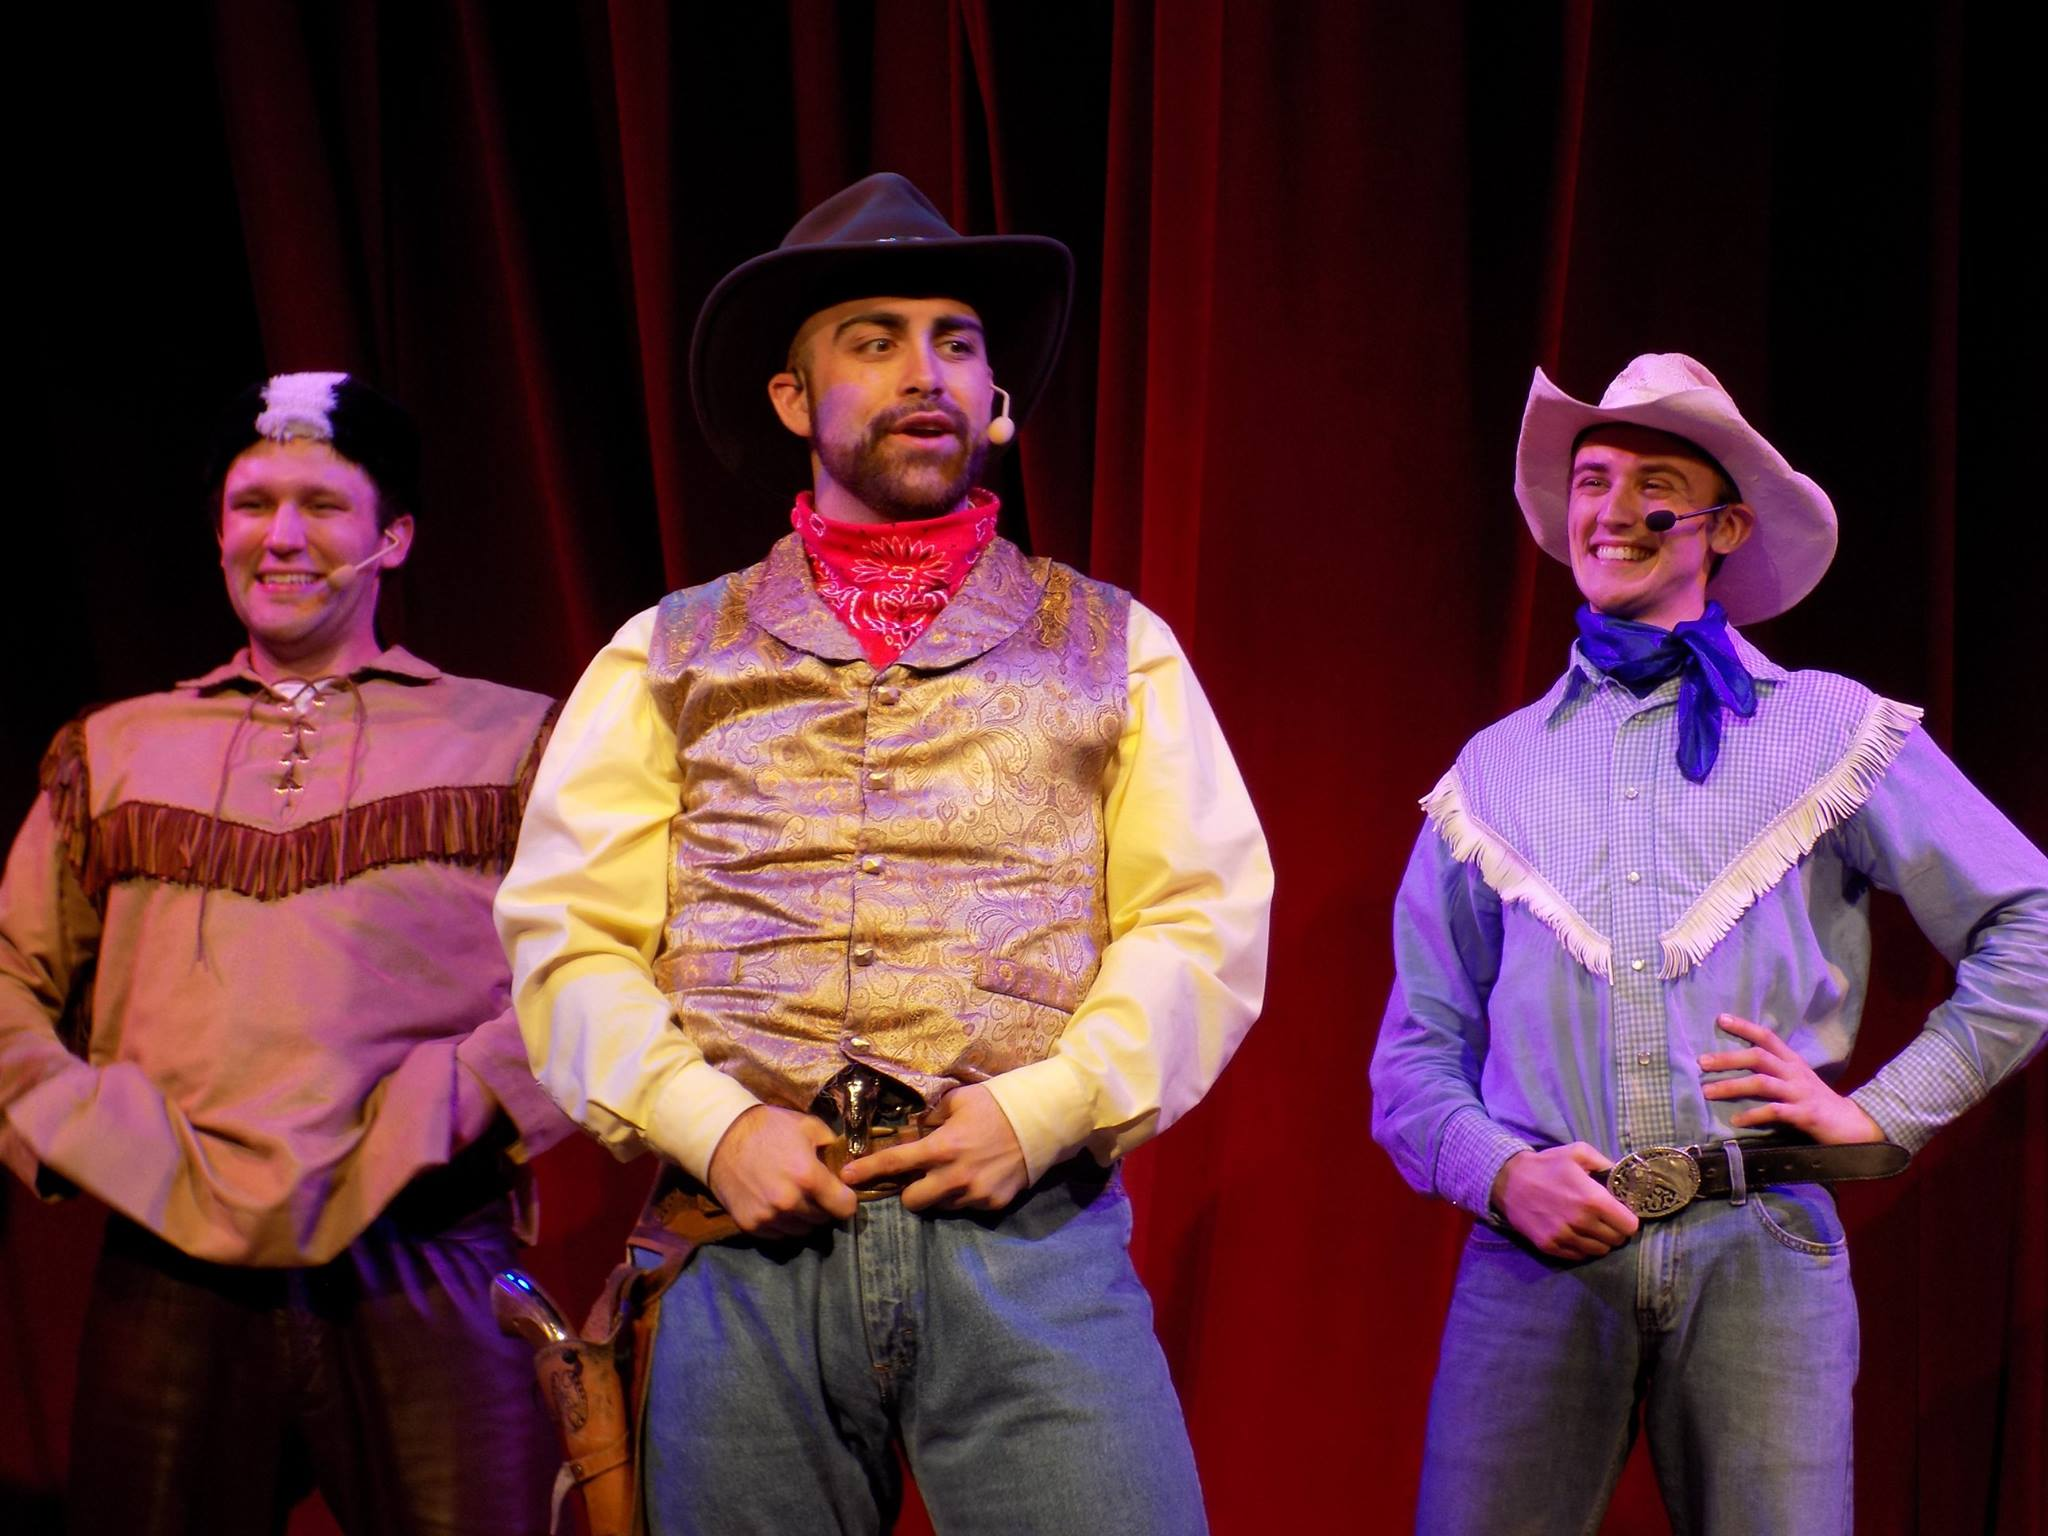 LUSTY LIL'S WILD WEST REVUE